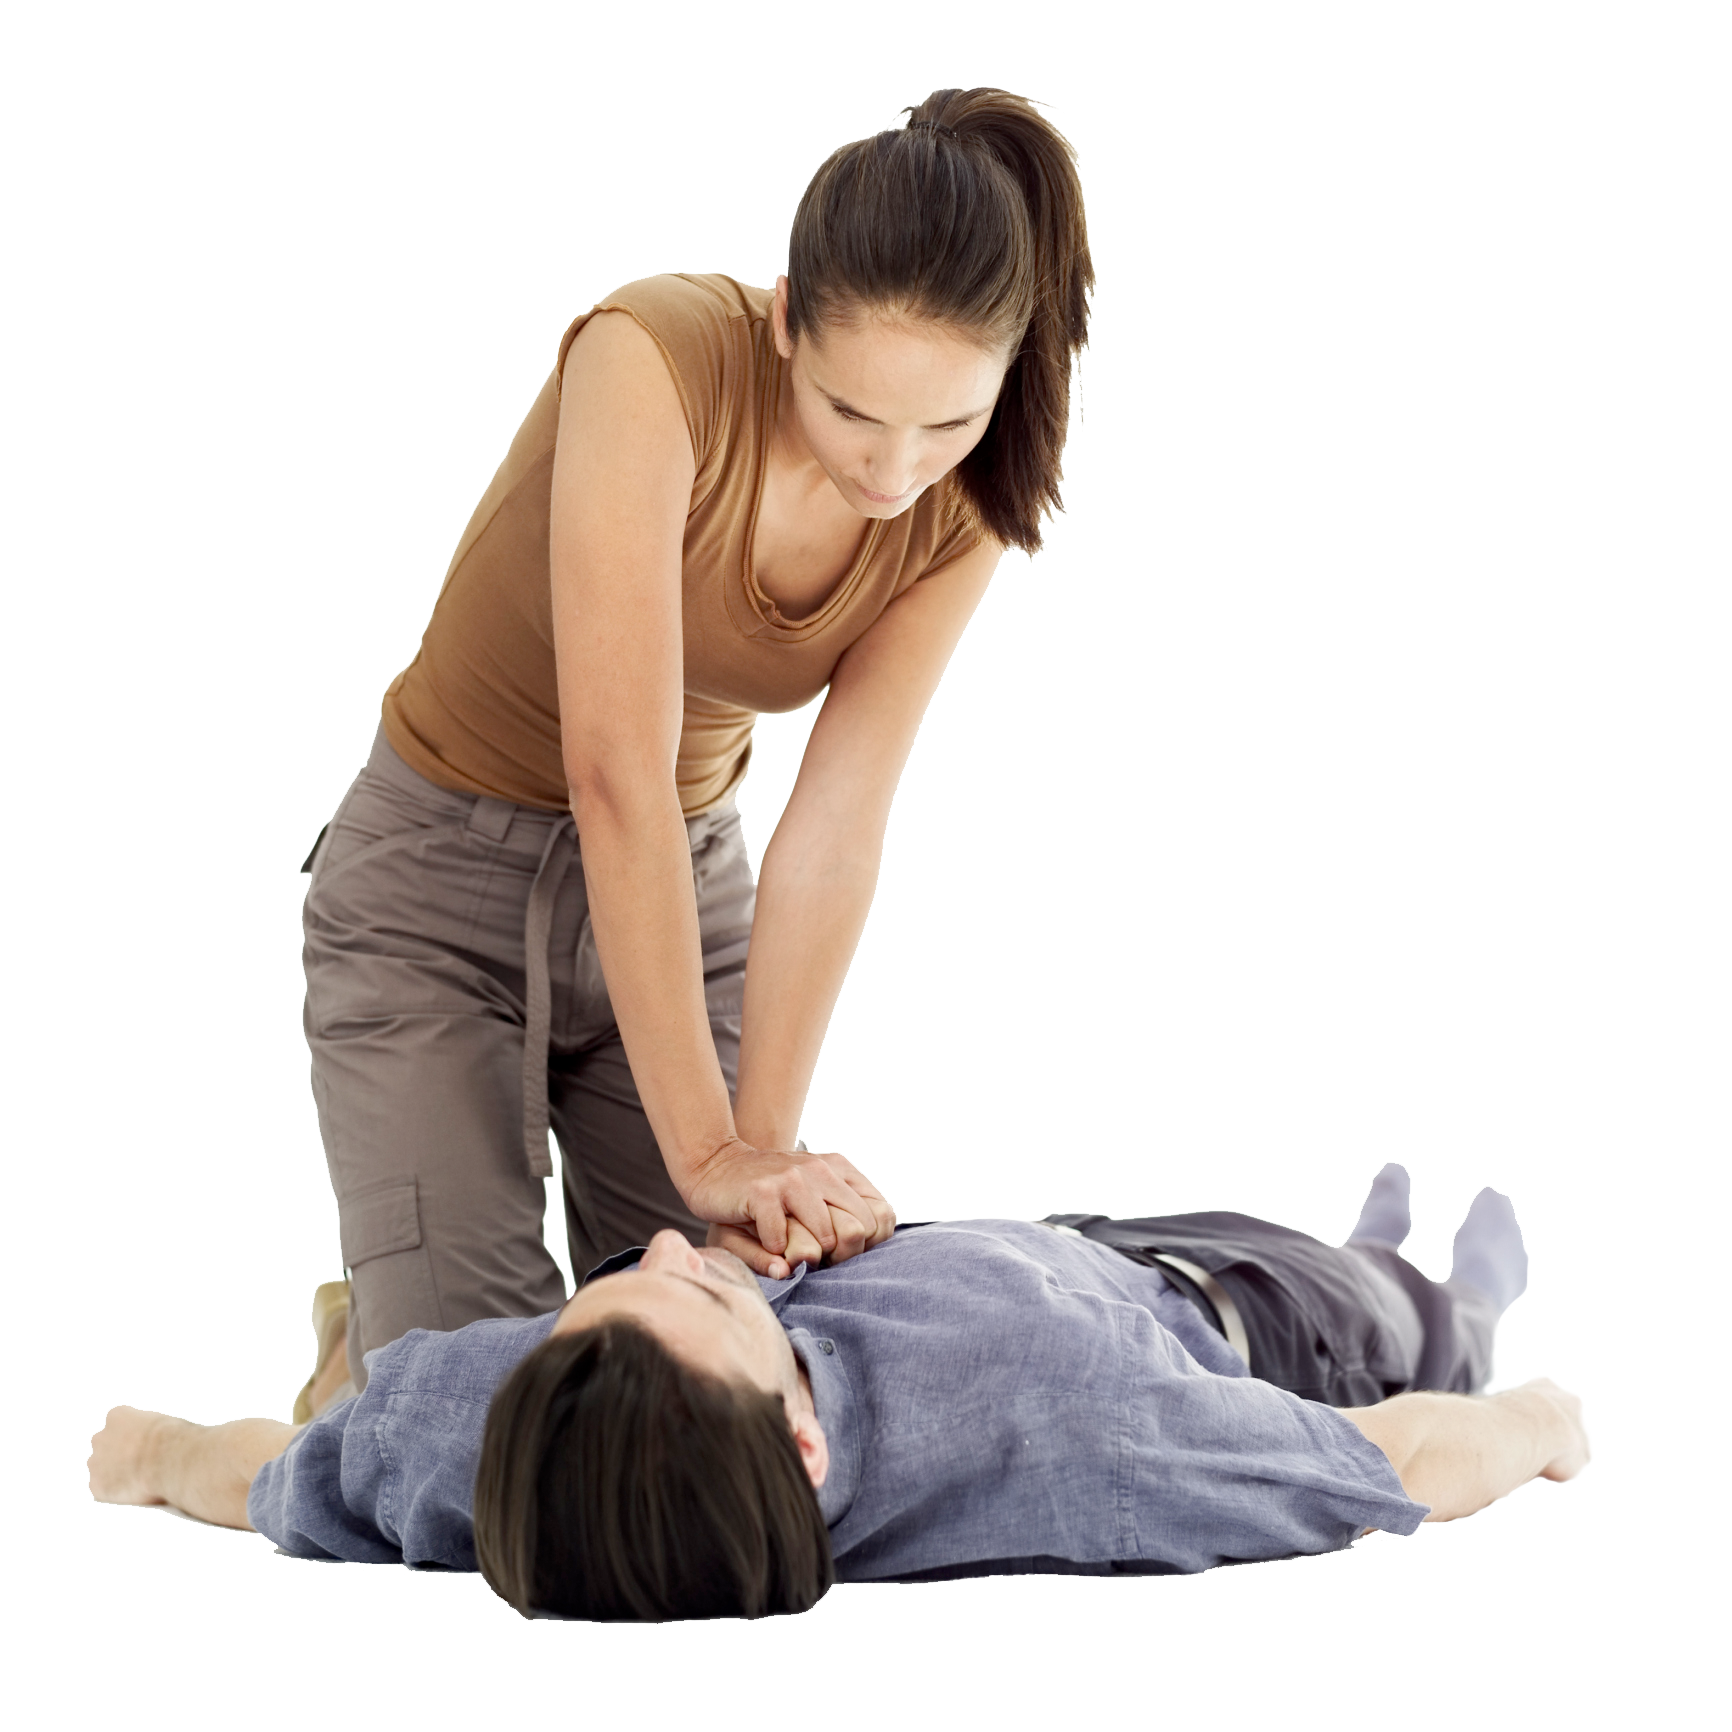 Staying Up To Date with CPR